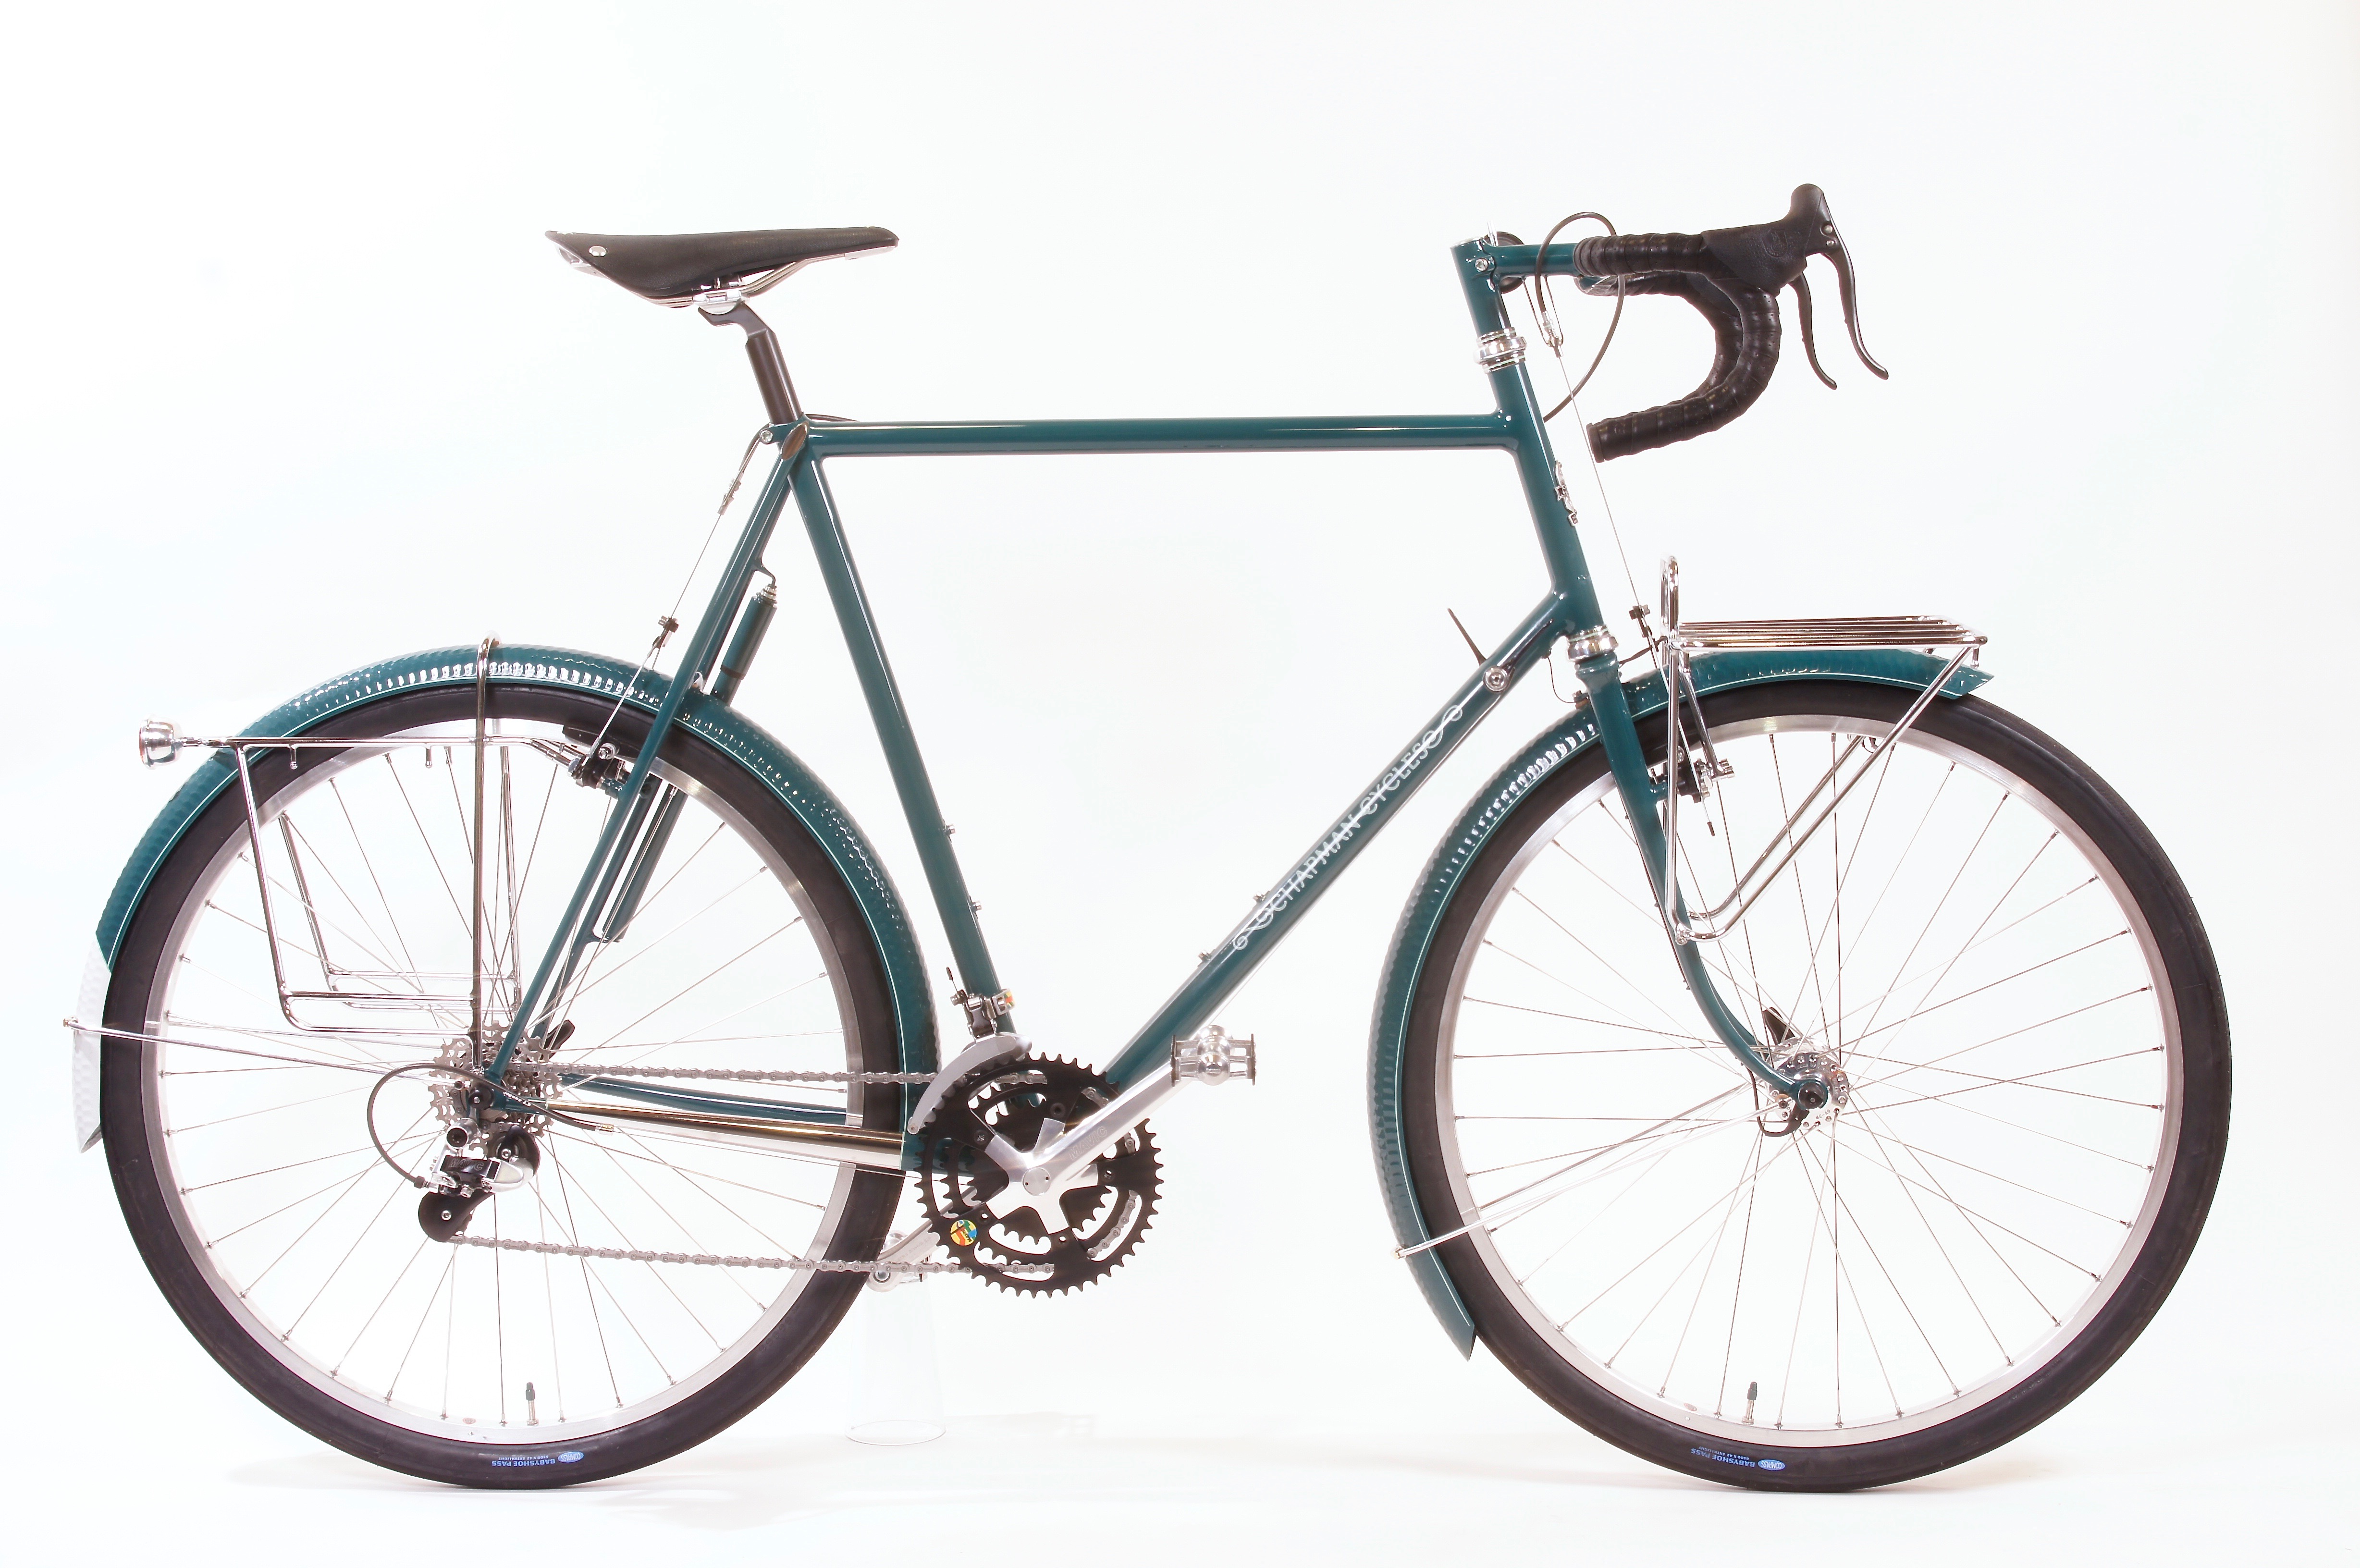 Ryan's 650B light tourer